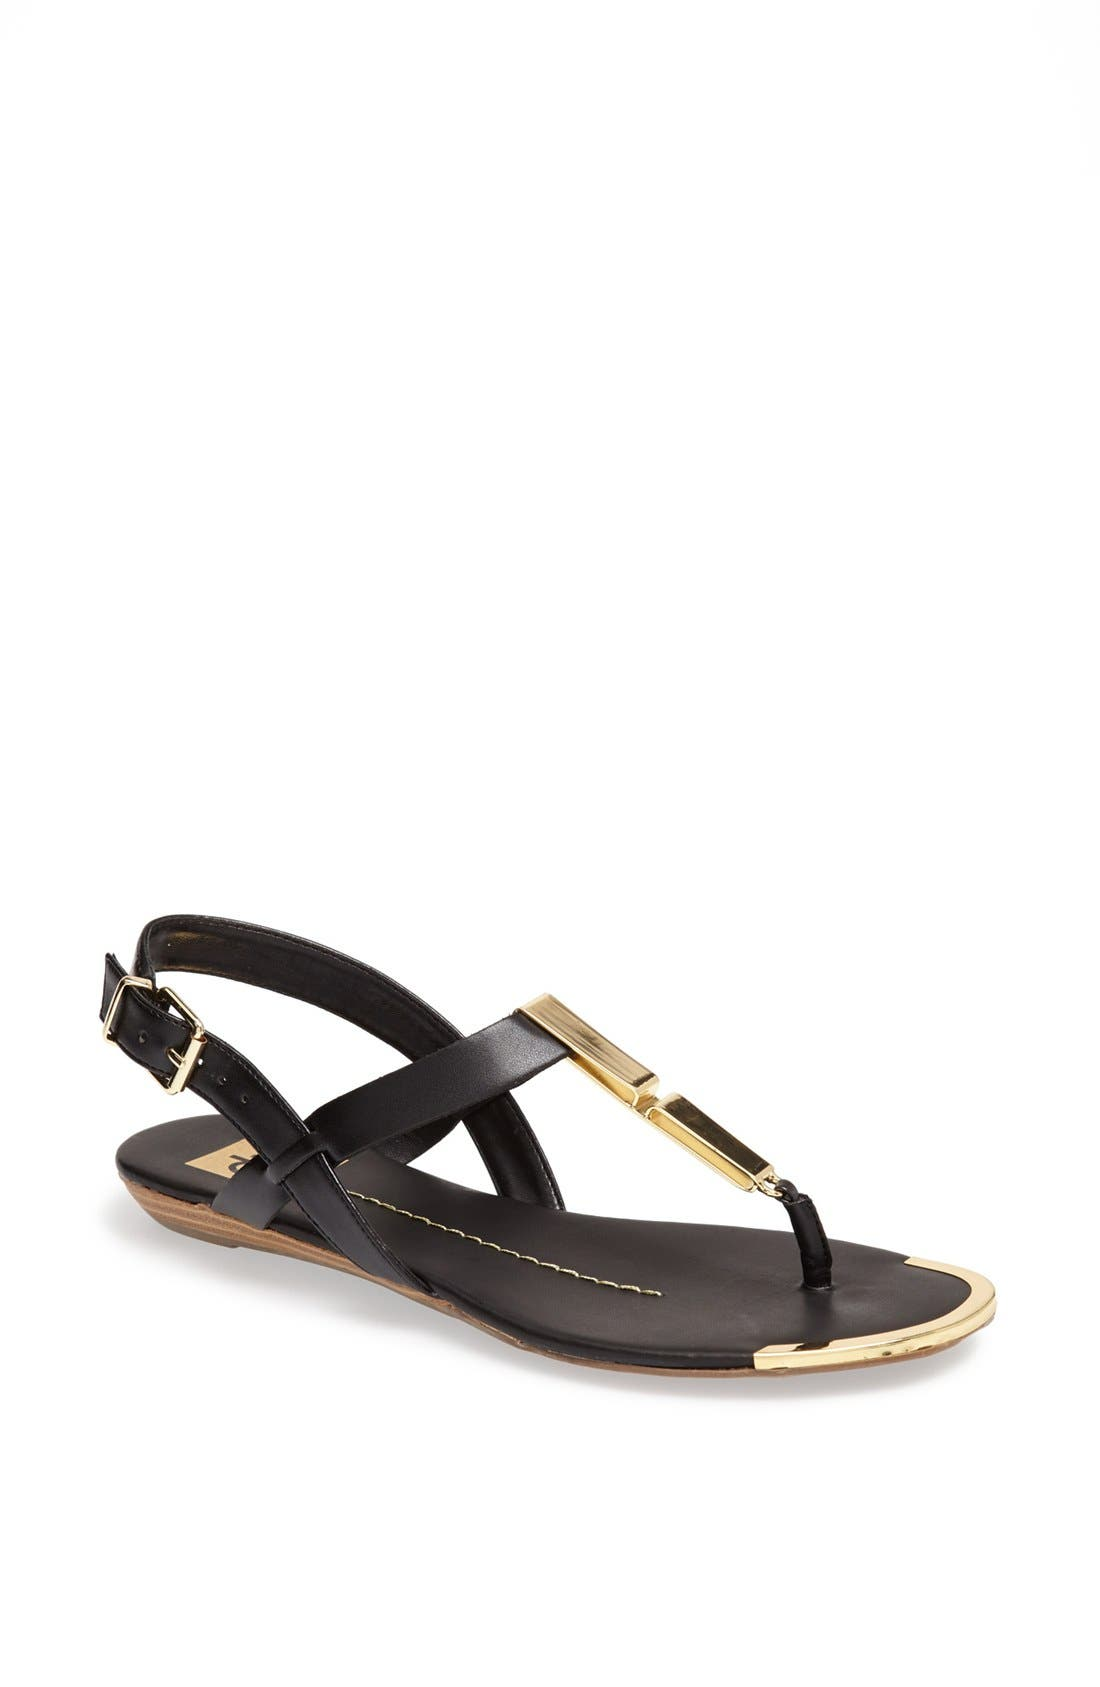 DV by Dolce Vita 'Abley' Thong Sandal,                             Main thumbnail 1, color,                             001